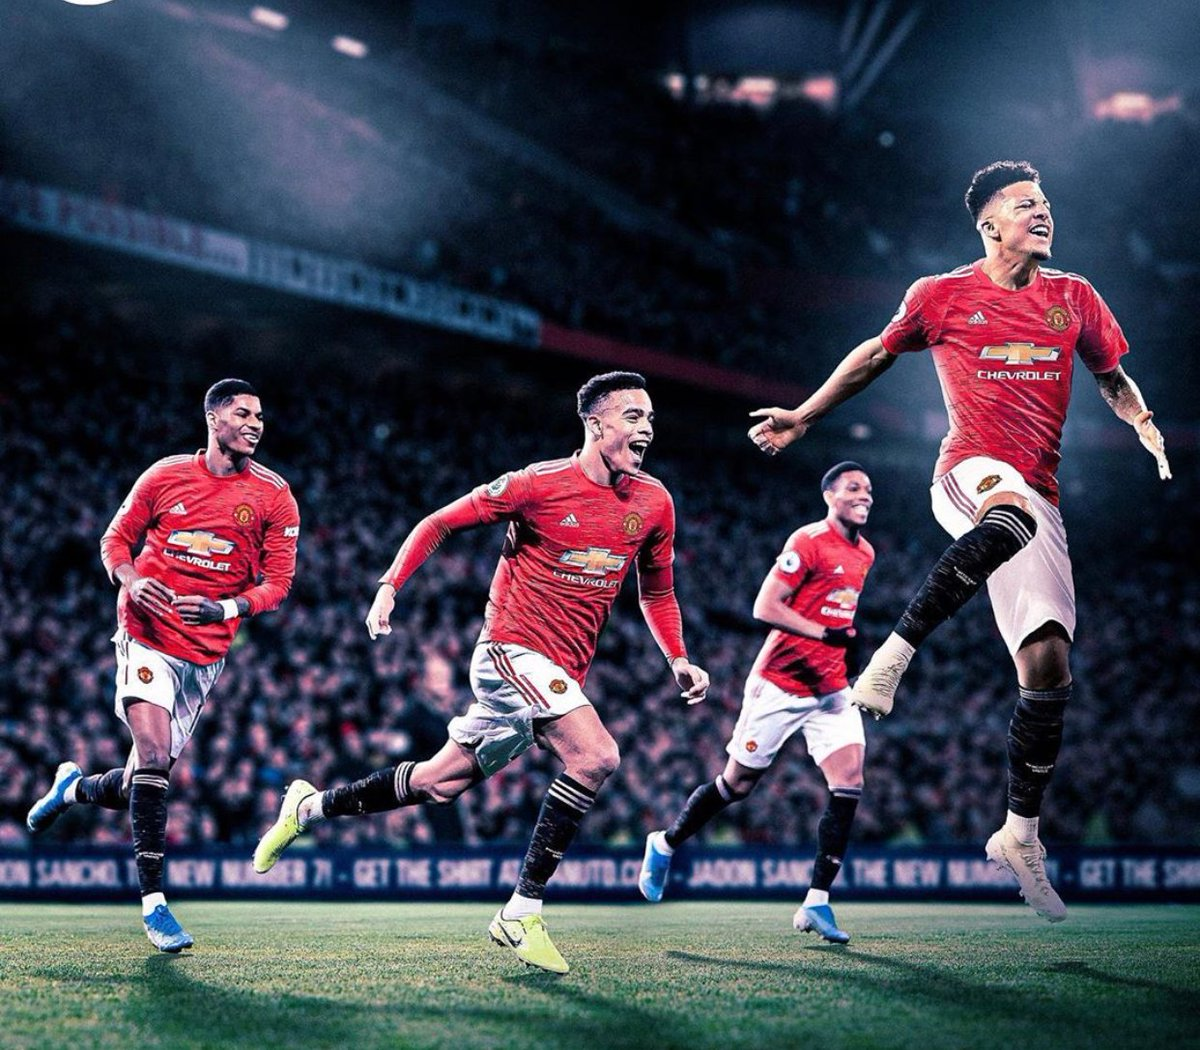 Marcus Rashford  Mason Greenwood  Anthony Martial  Jadon Sancho   Na Manchester United get the best attack for Premier League. 🔴🔥  #MUFC #UEL https://t.co/0W3RplnHoo